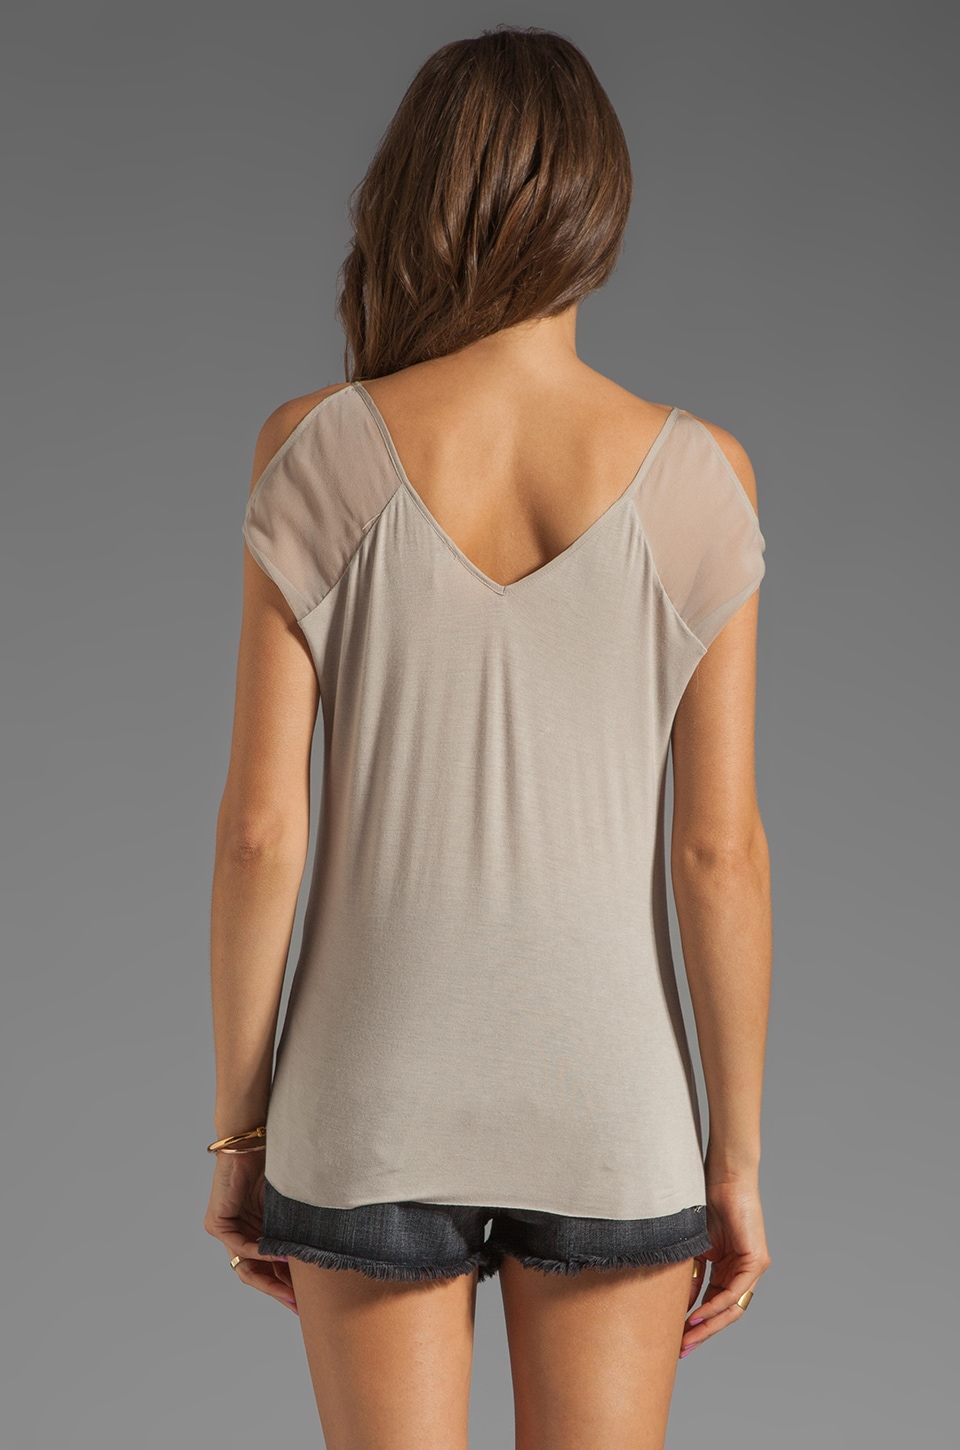 Bailey 44 Sting Ray Top in Beige